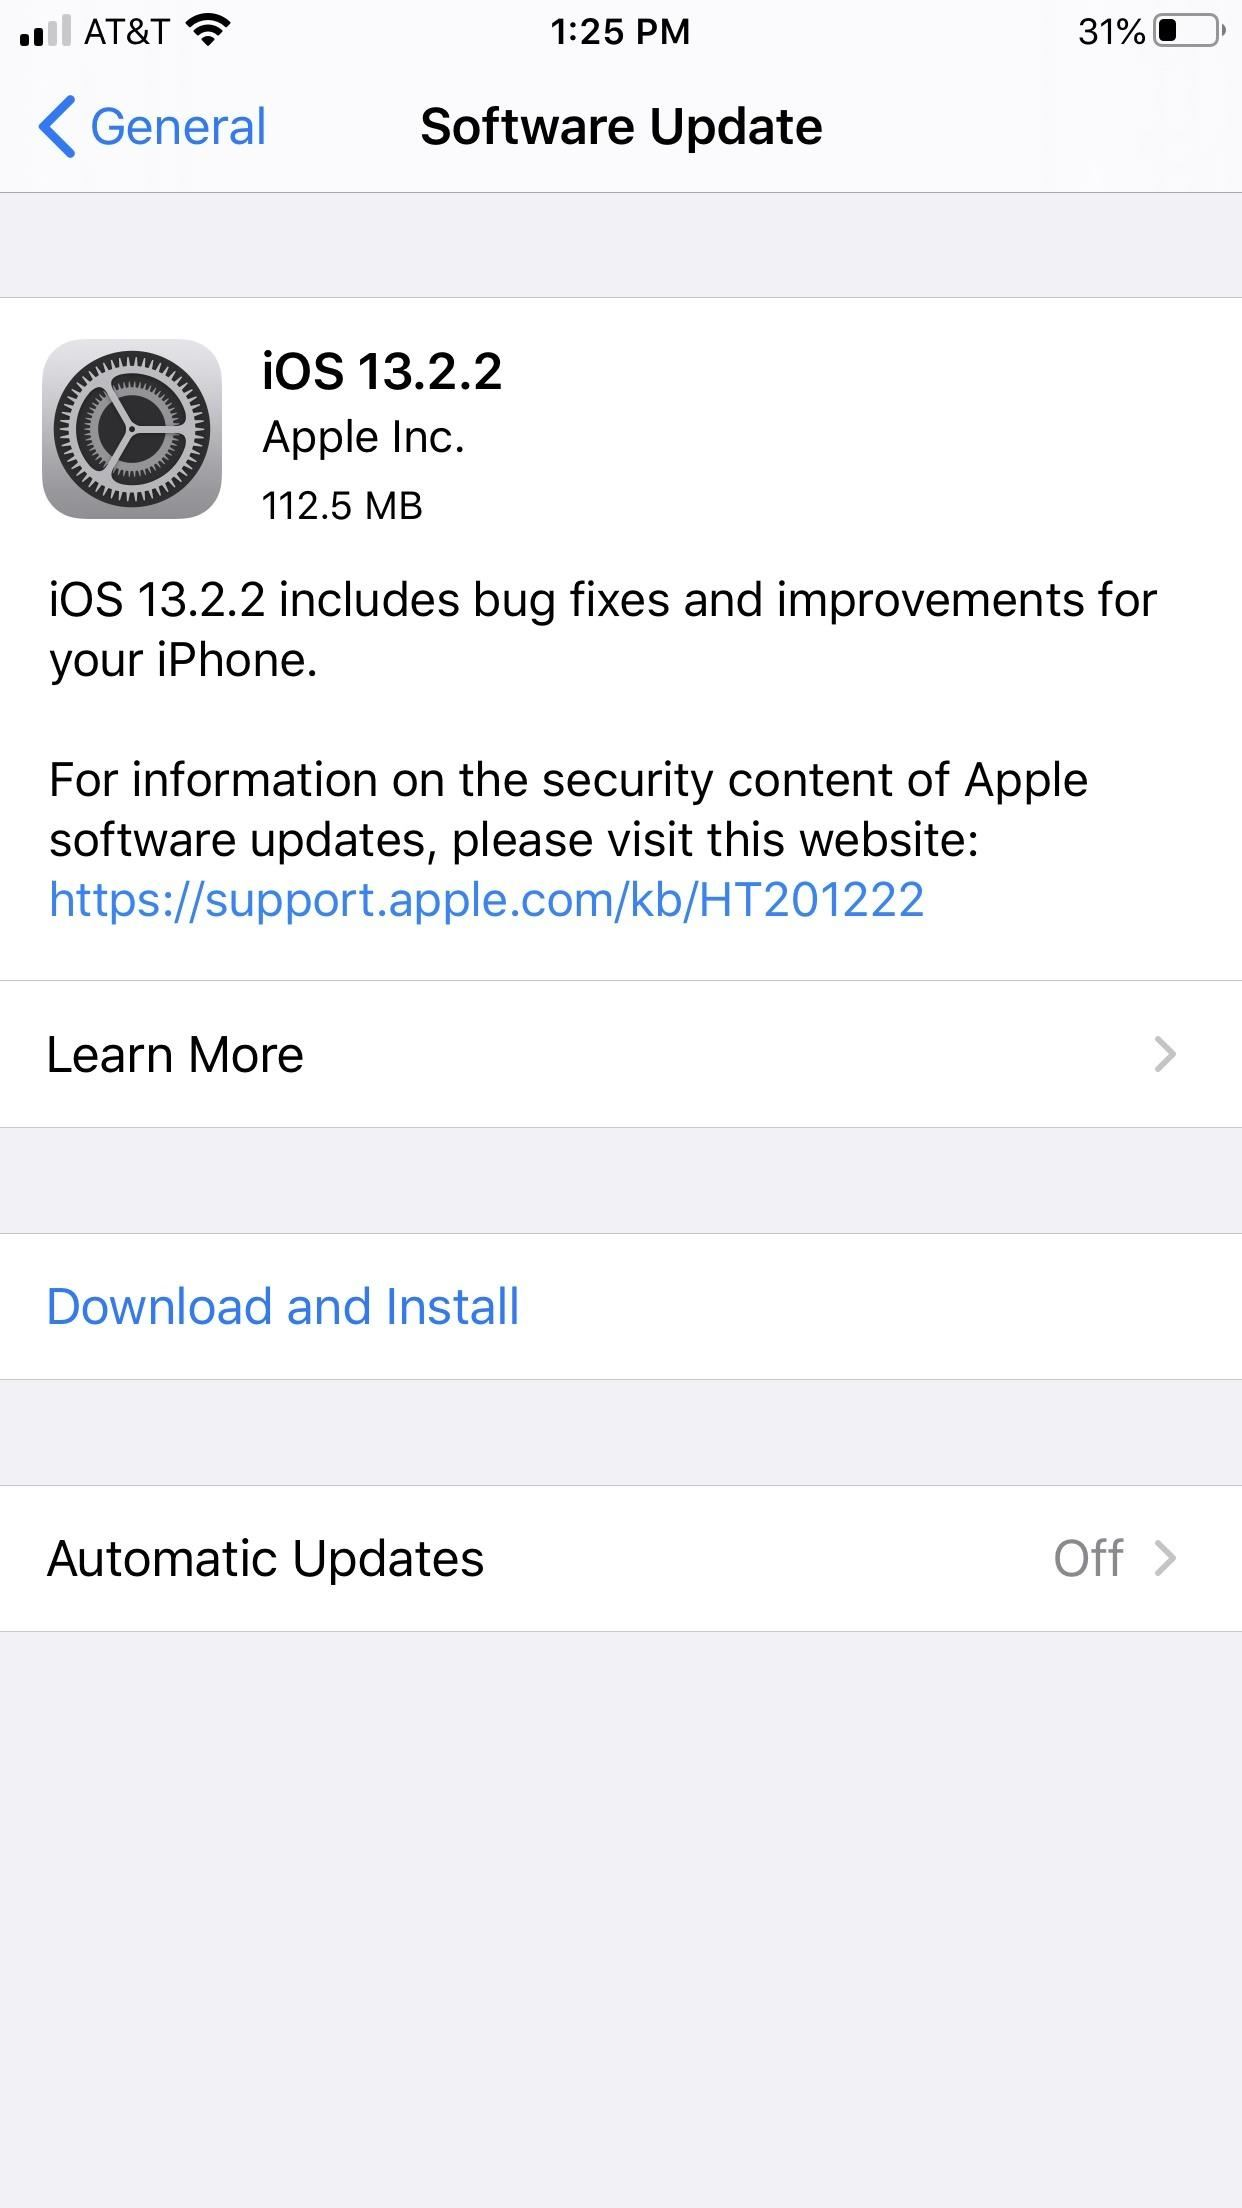 Apple released iOS 13.2.2 for iPhones. Contains corrections for multitasking errors and signal failures.